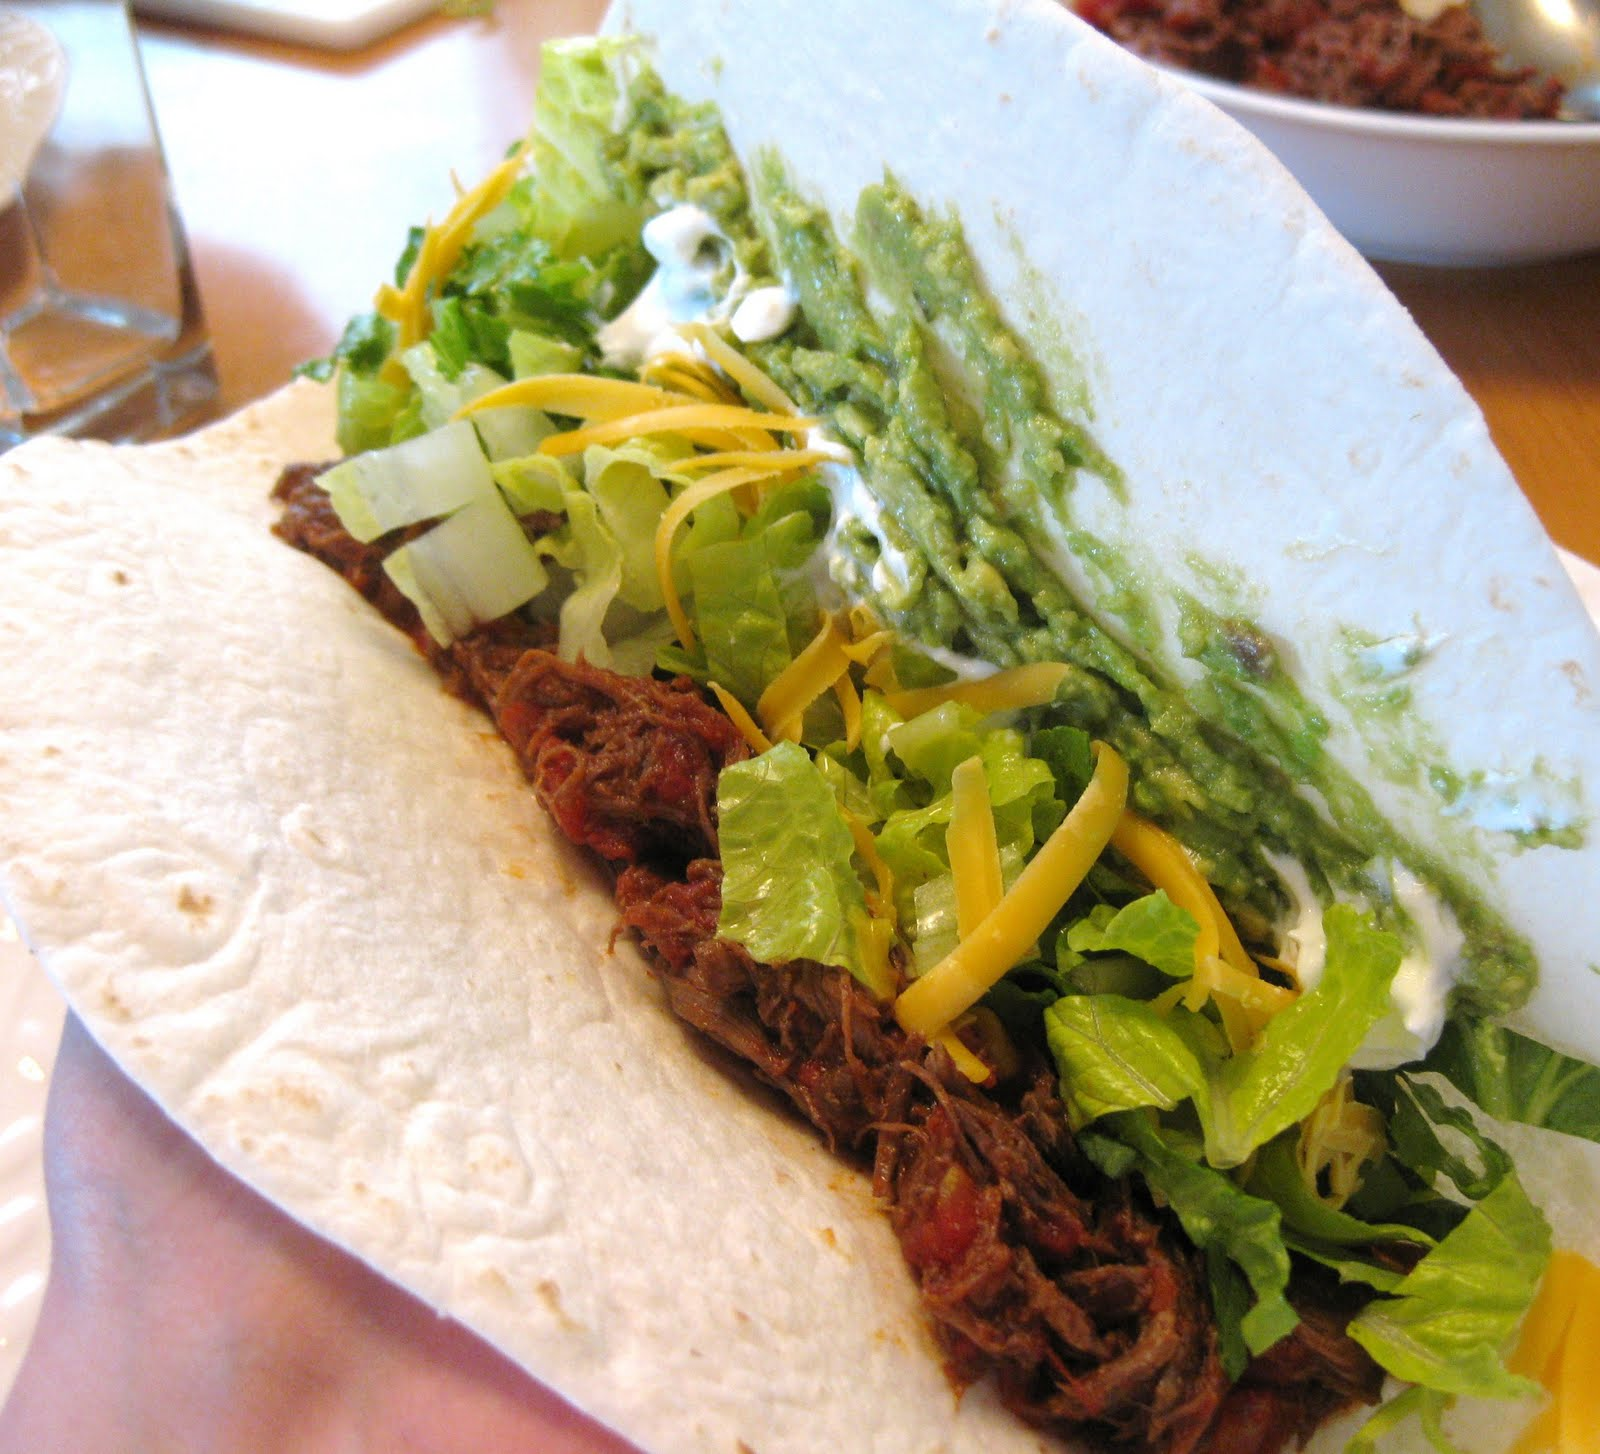 Sarah's Fares: Leftover Roast - Beef Tacos